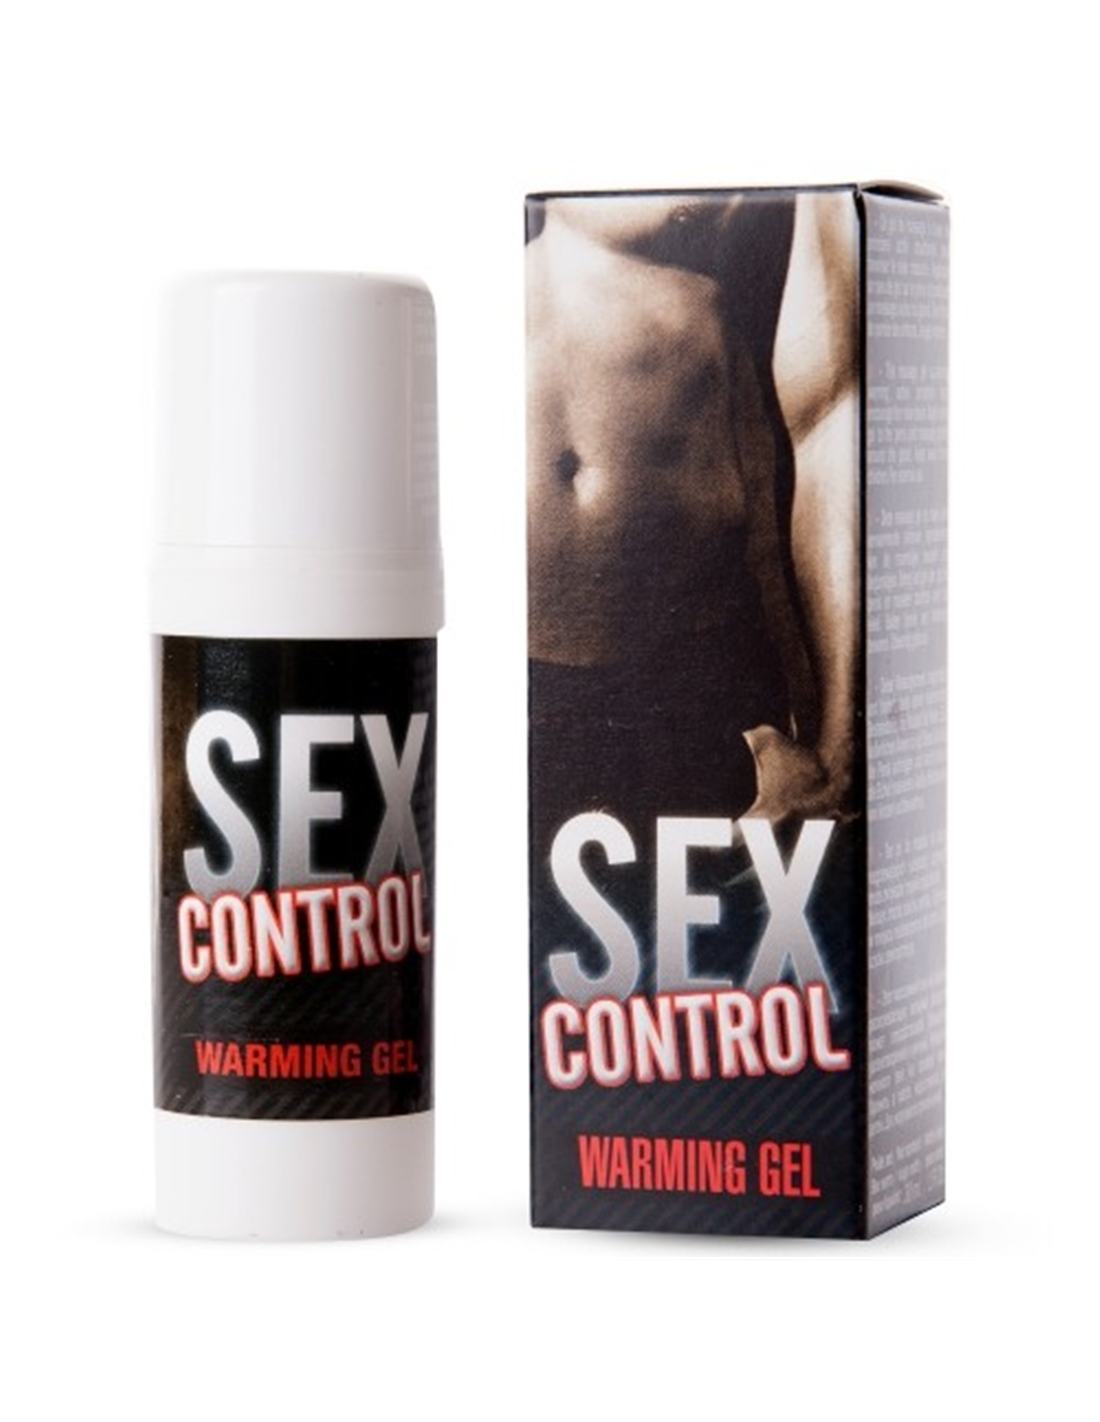 Gel De Massagem Com Efeito Calor Sex Control 30 - ml - PR2010299881